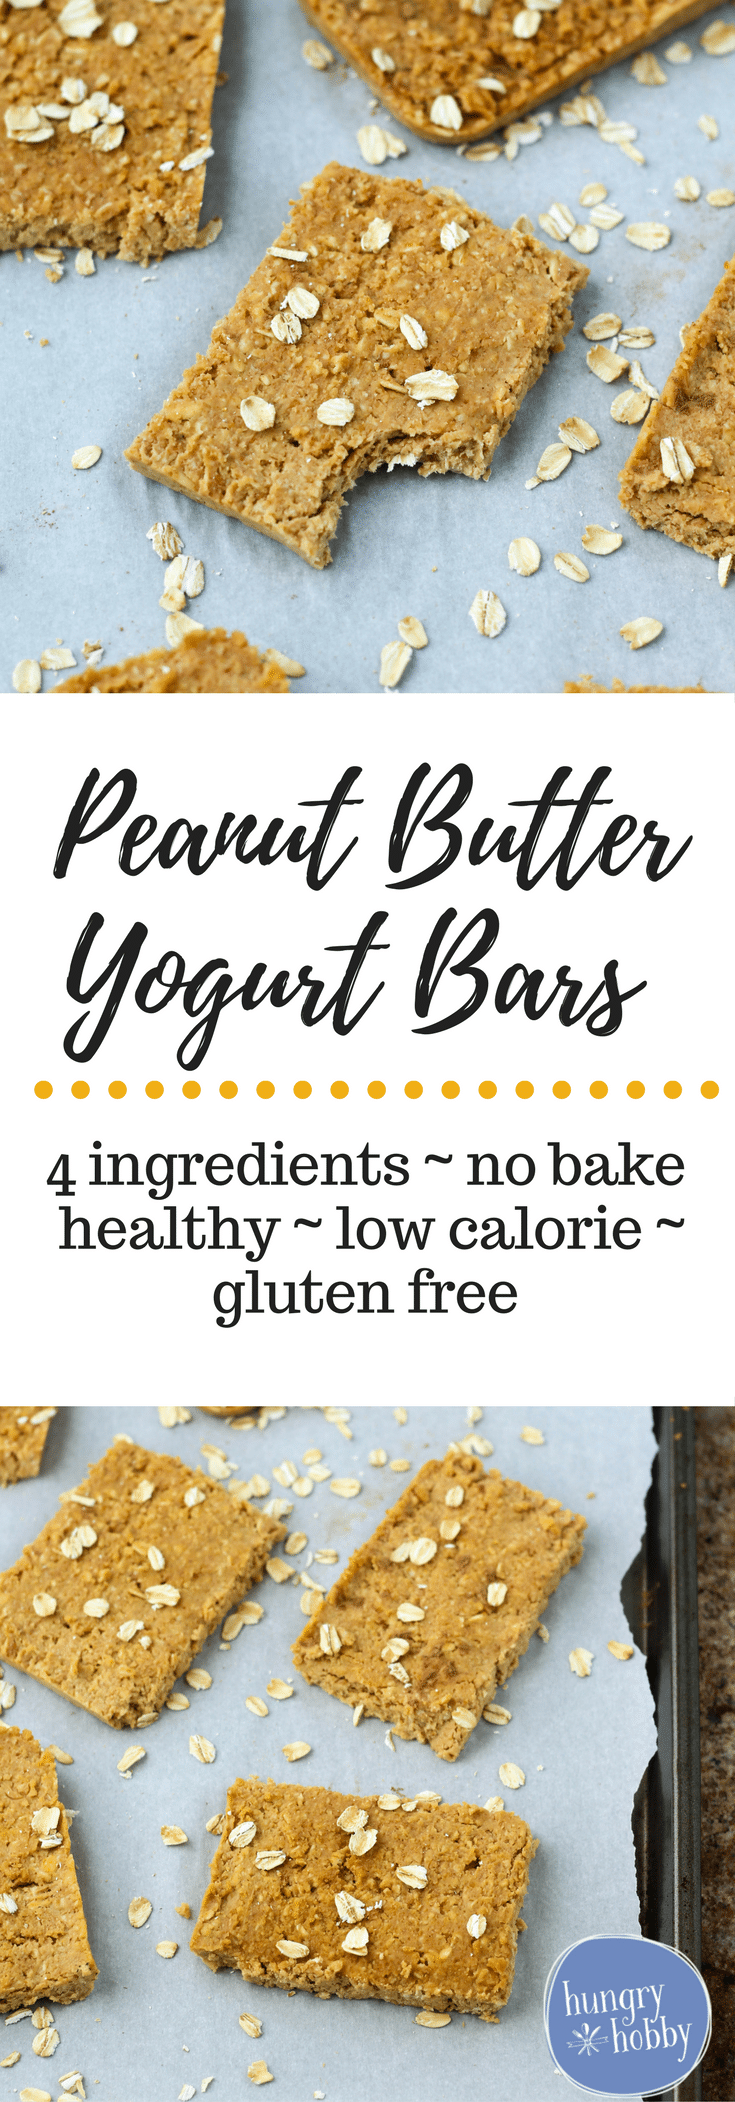 These Peanut Butter Yogurt Bars are made with just four ingredients and are no bake so you can have a healthy snack any time!